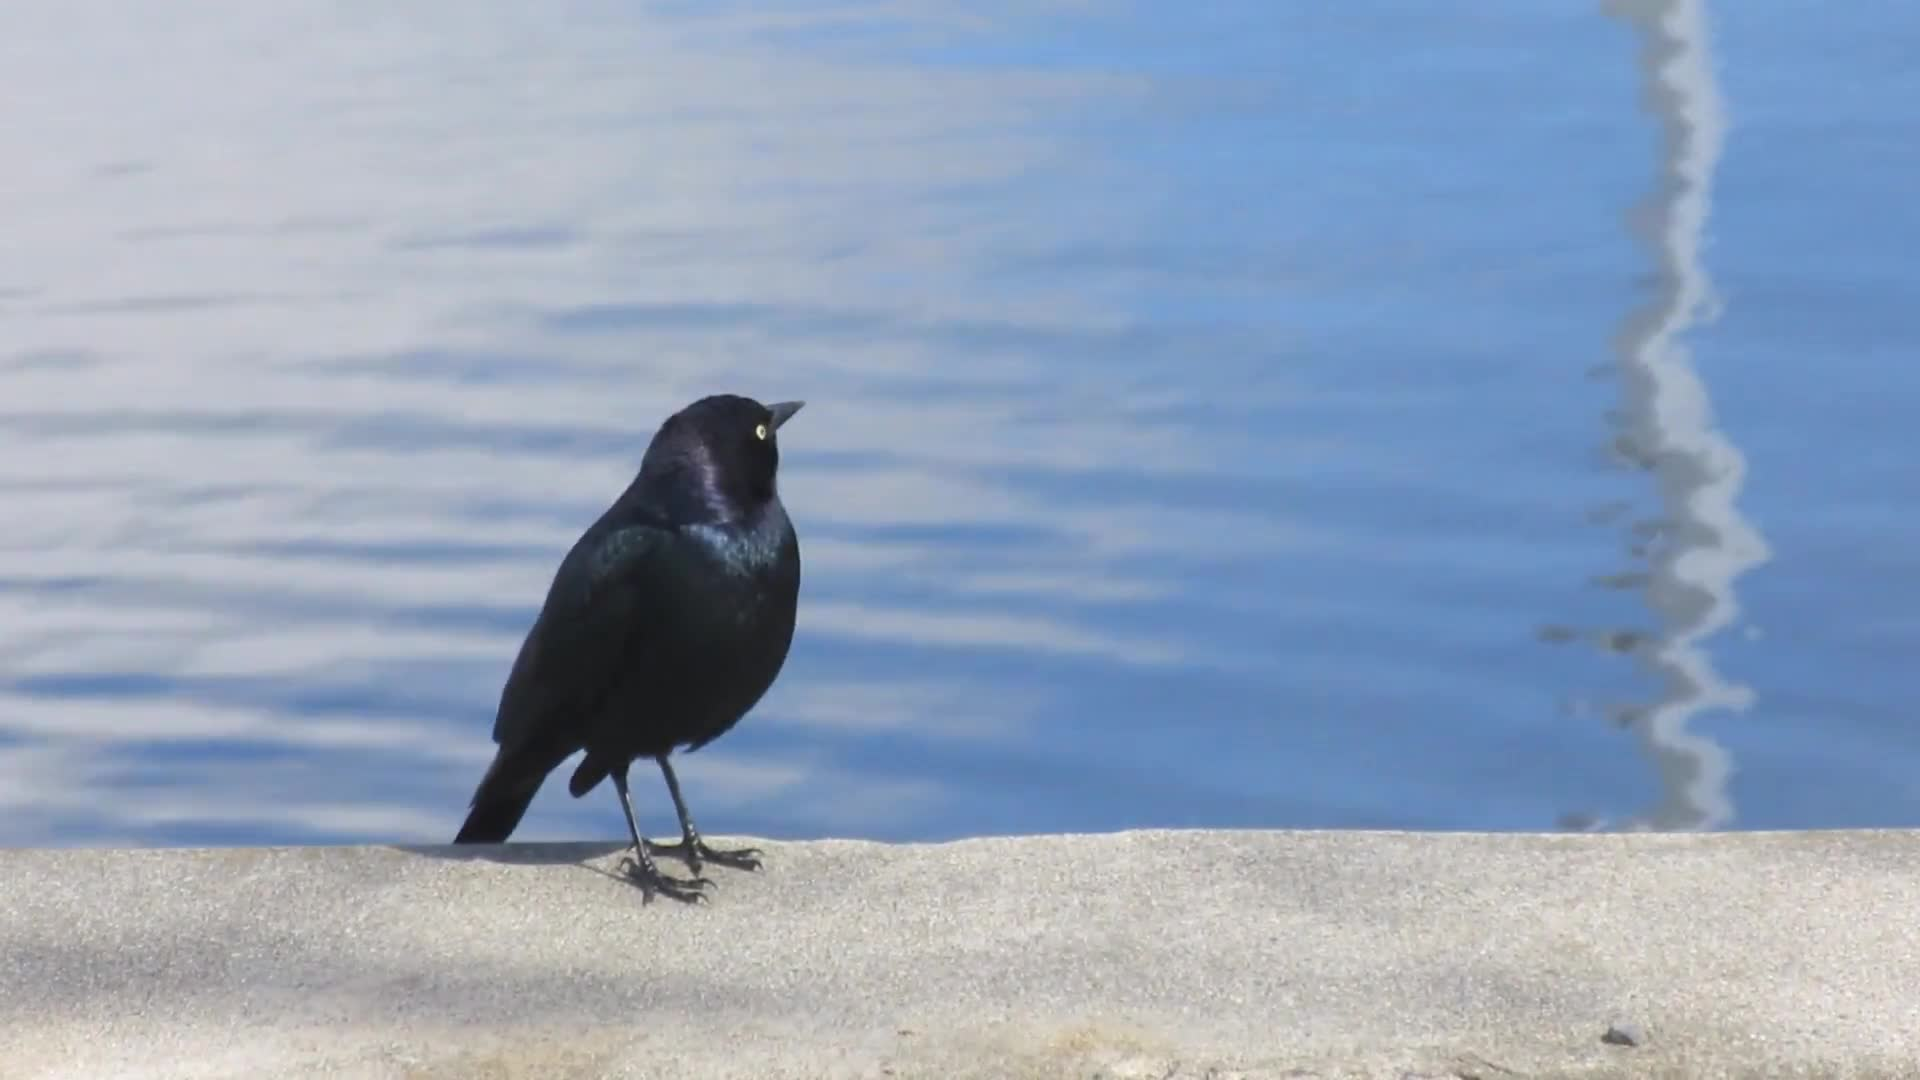 Video of black bird